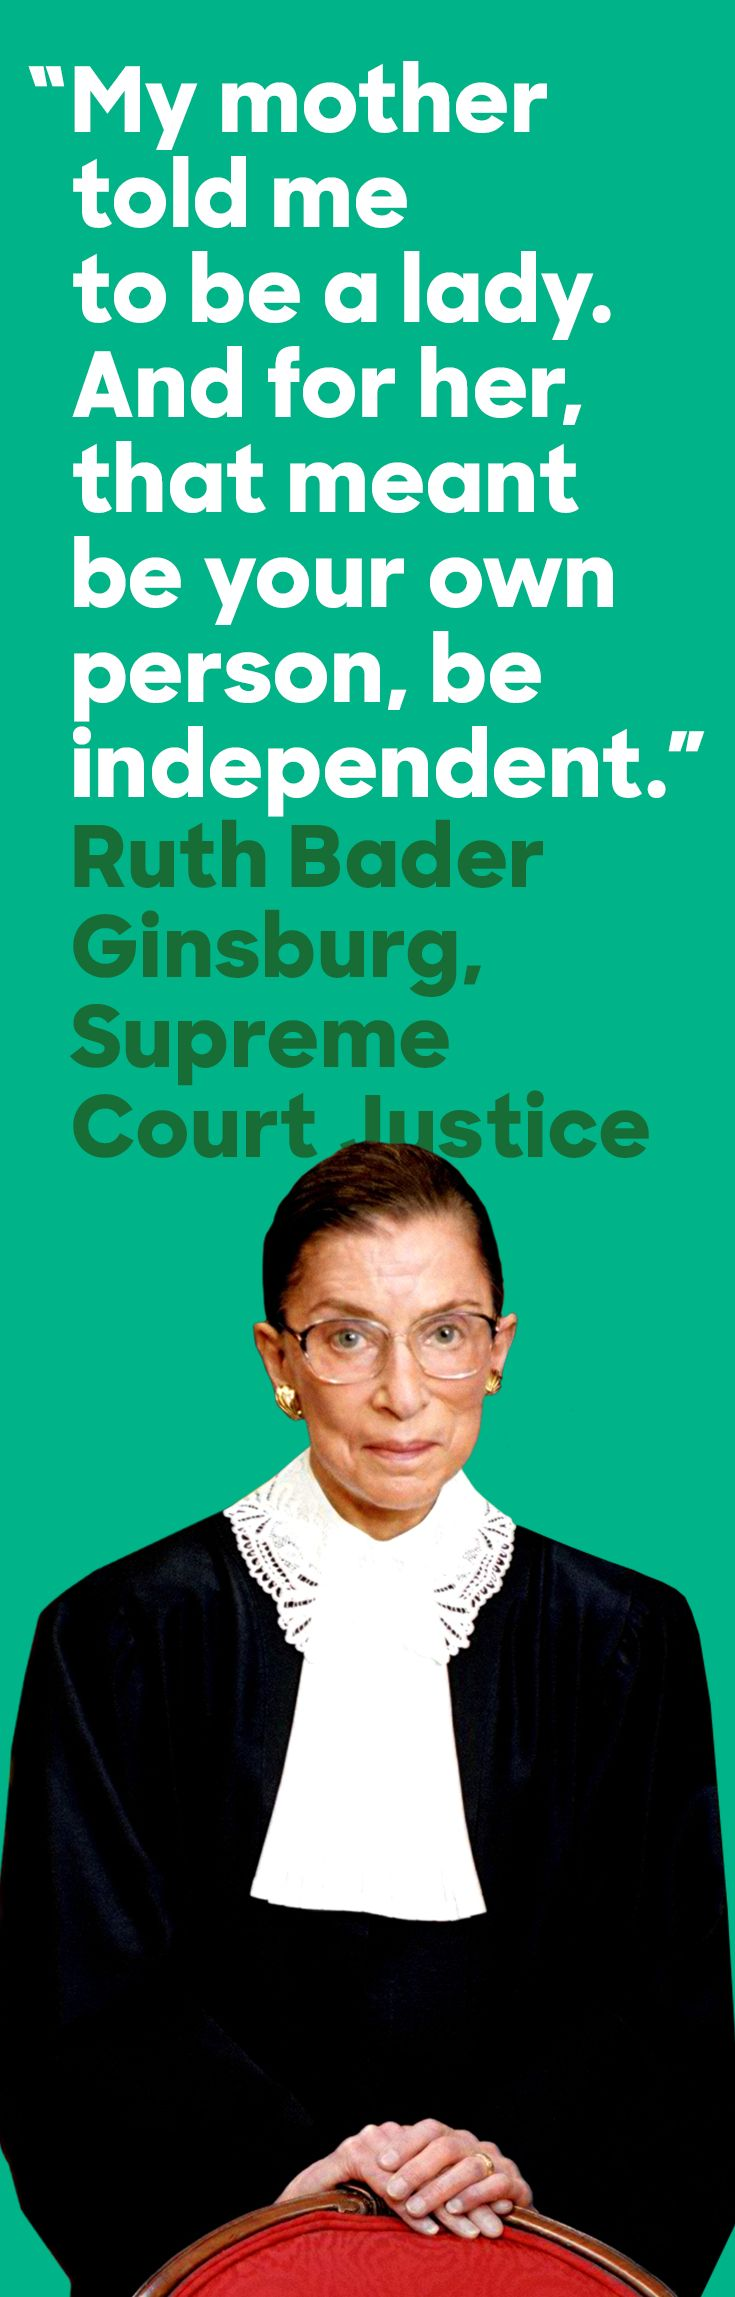 Supreme Court Justice Ruth Bader Ginsburg, the second female justice and a lifelong fighter for equal rights. As a litigator in the 1970s, she argued some of the most important cases against sex discrimination before the Supreme Court; as a Justice, she's fought to protect the rights of women and all Americans.